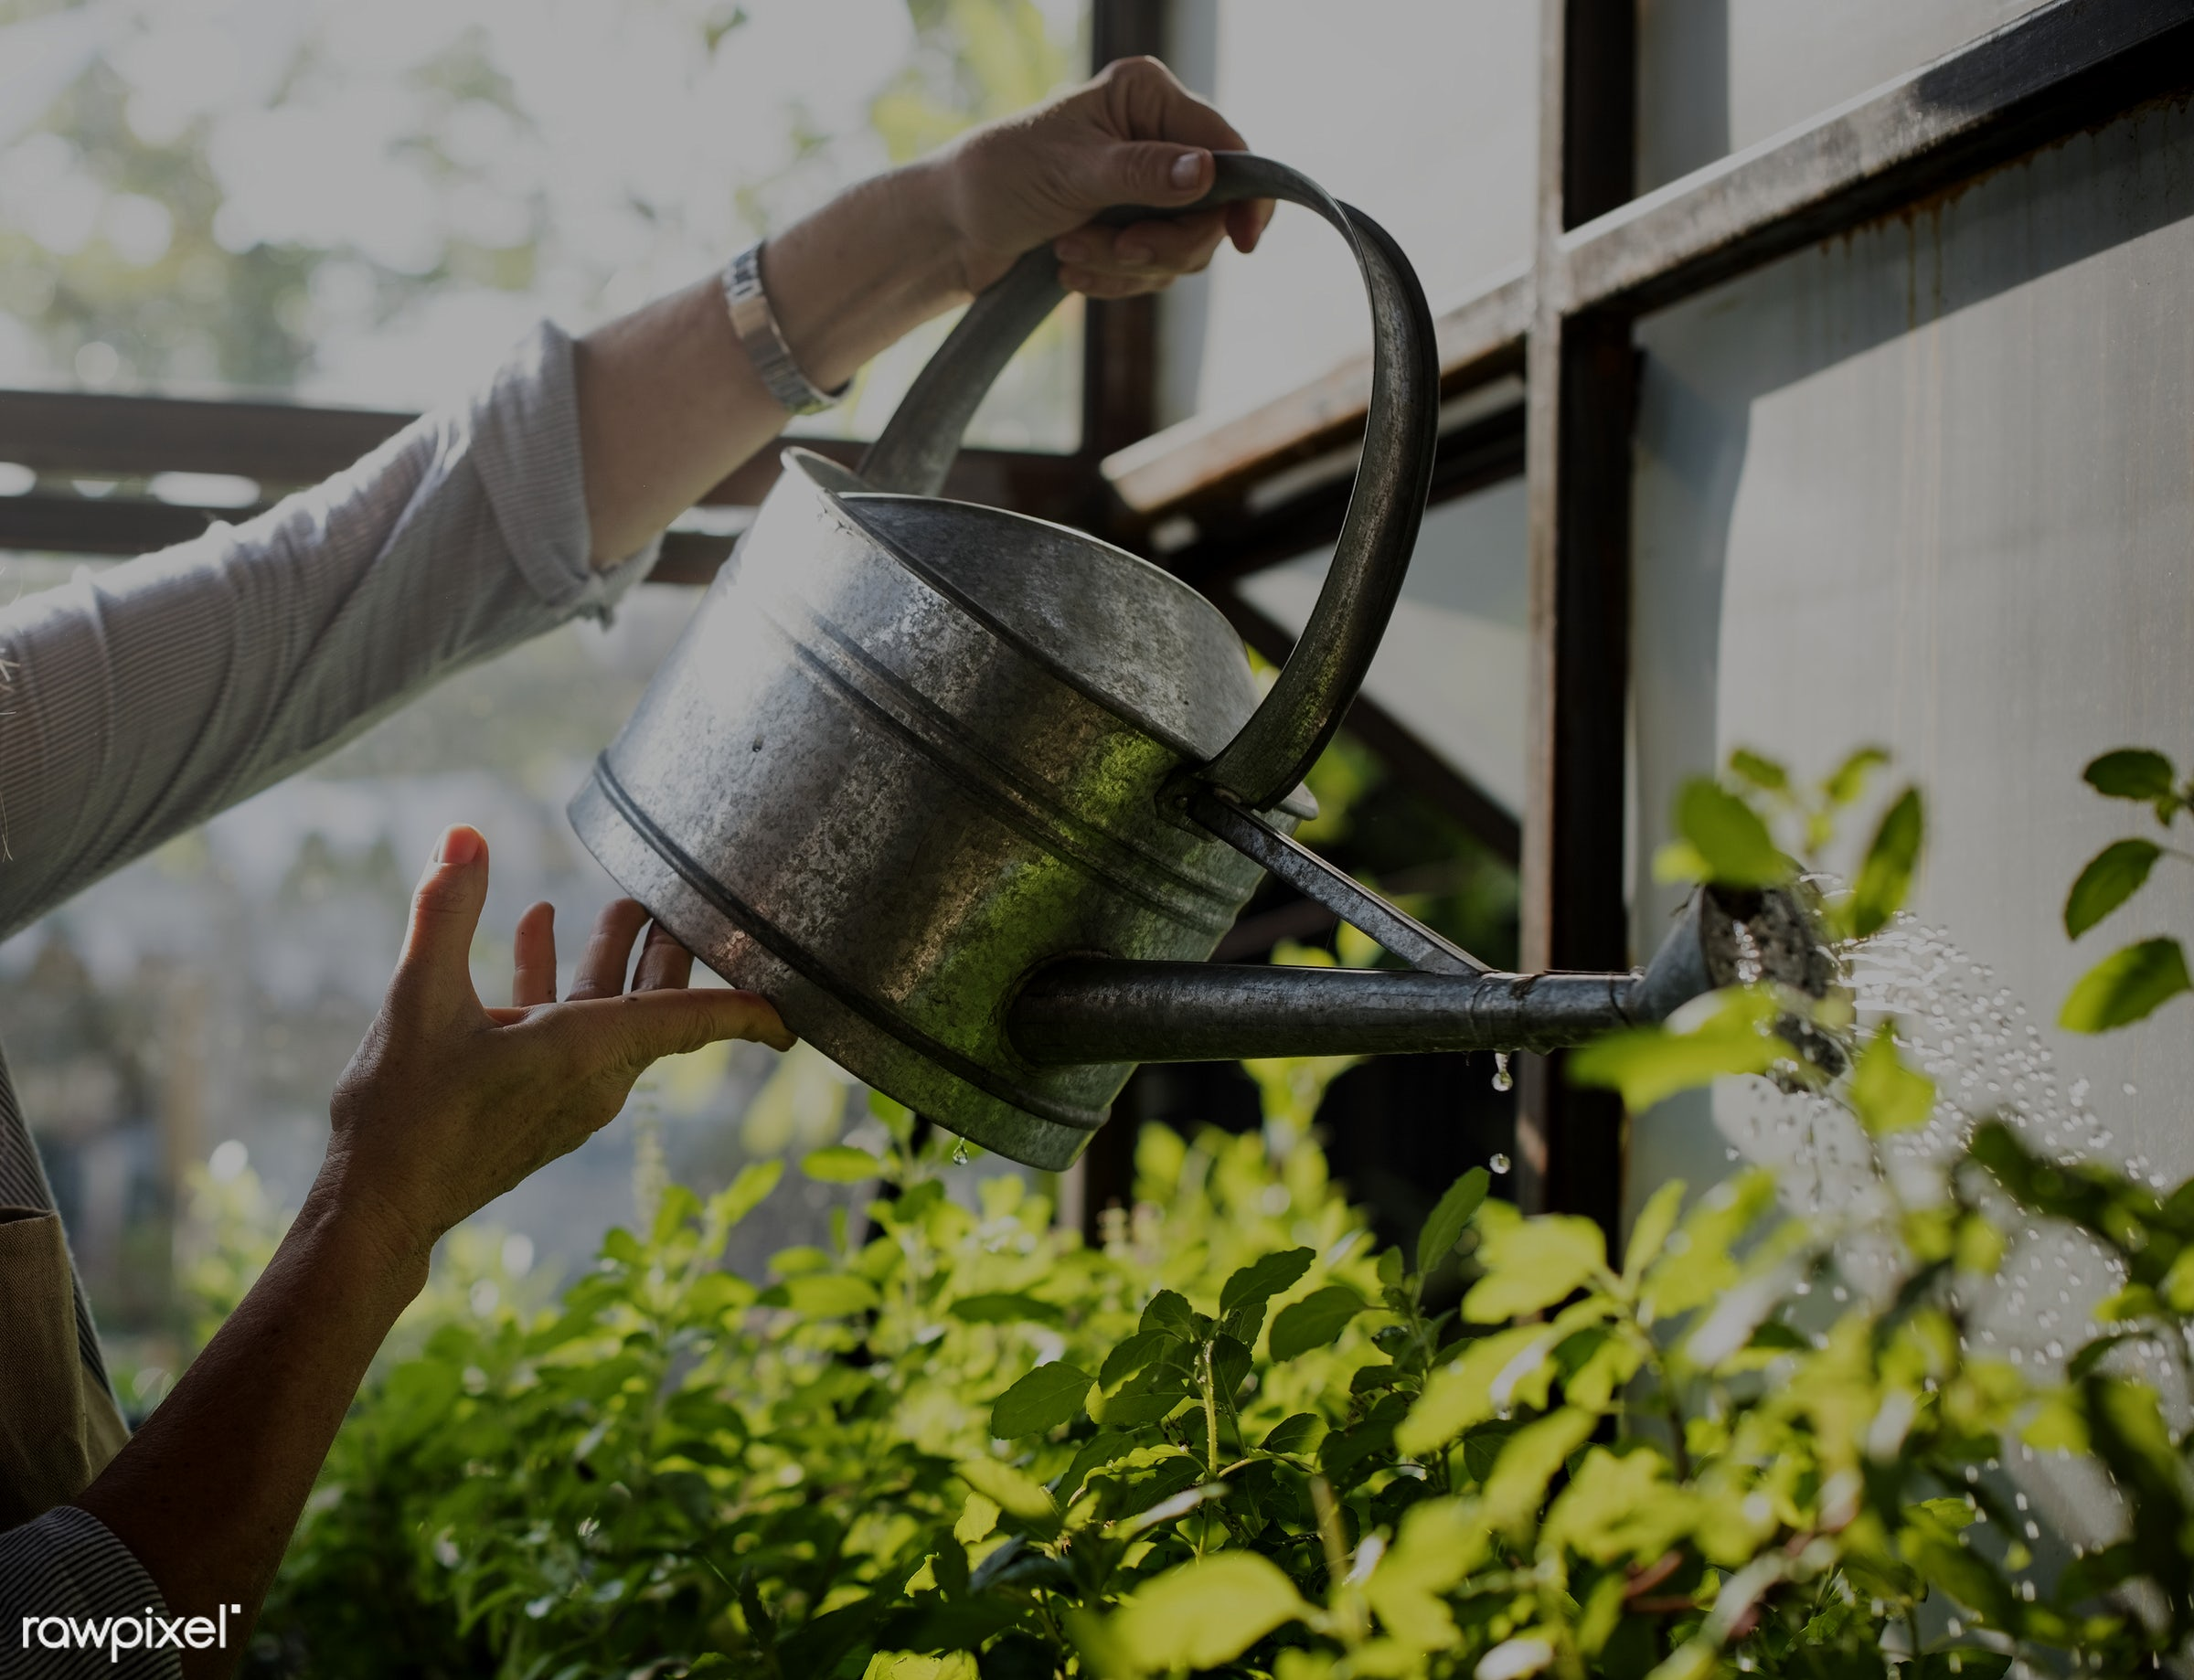 Hands watering plants with a metal can - closeup, hands, watering, can, metal, tin, greenhouse, green, plants, hobbies,...